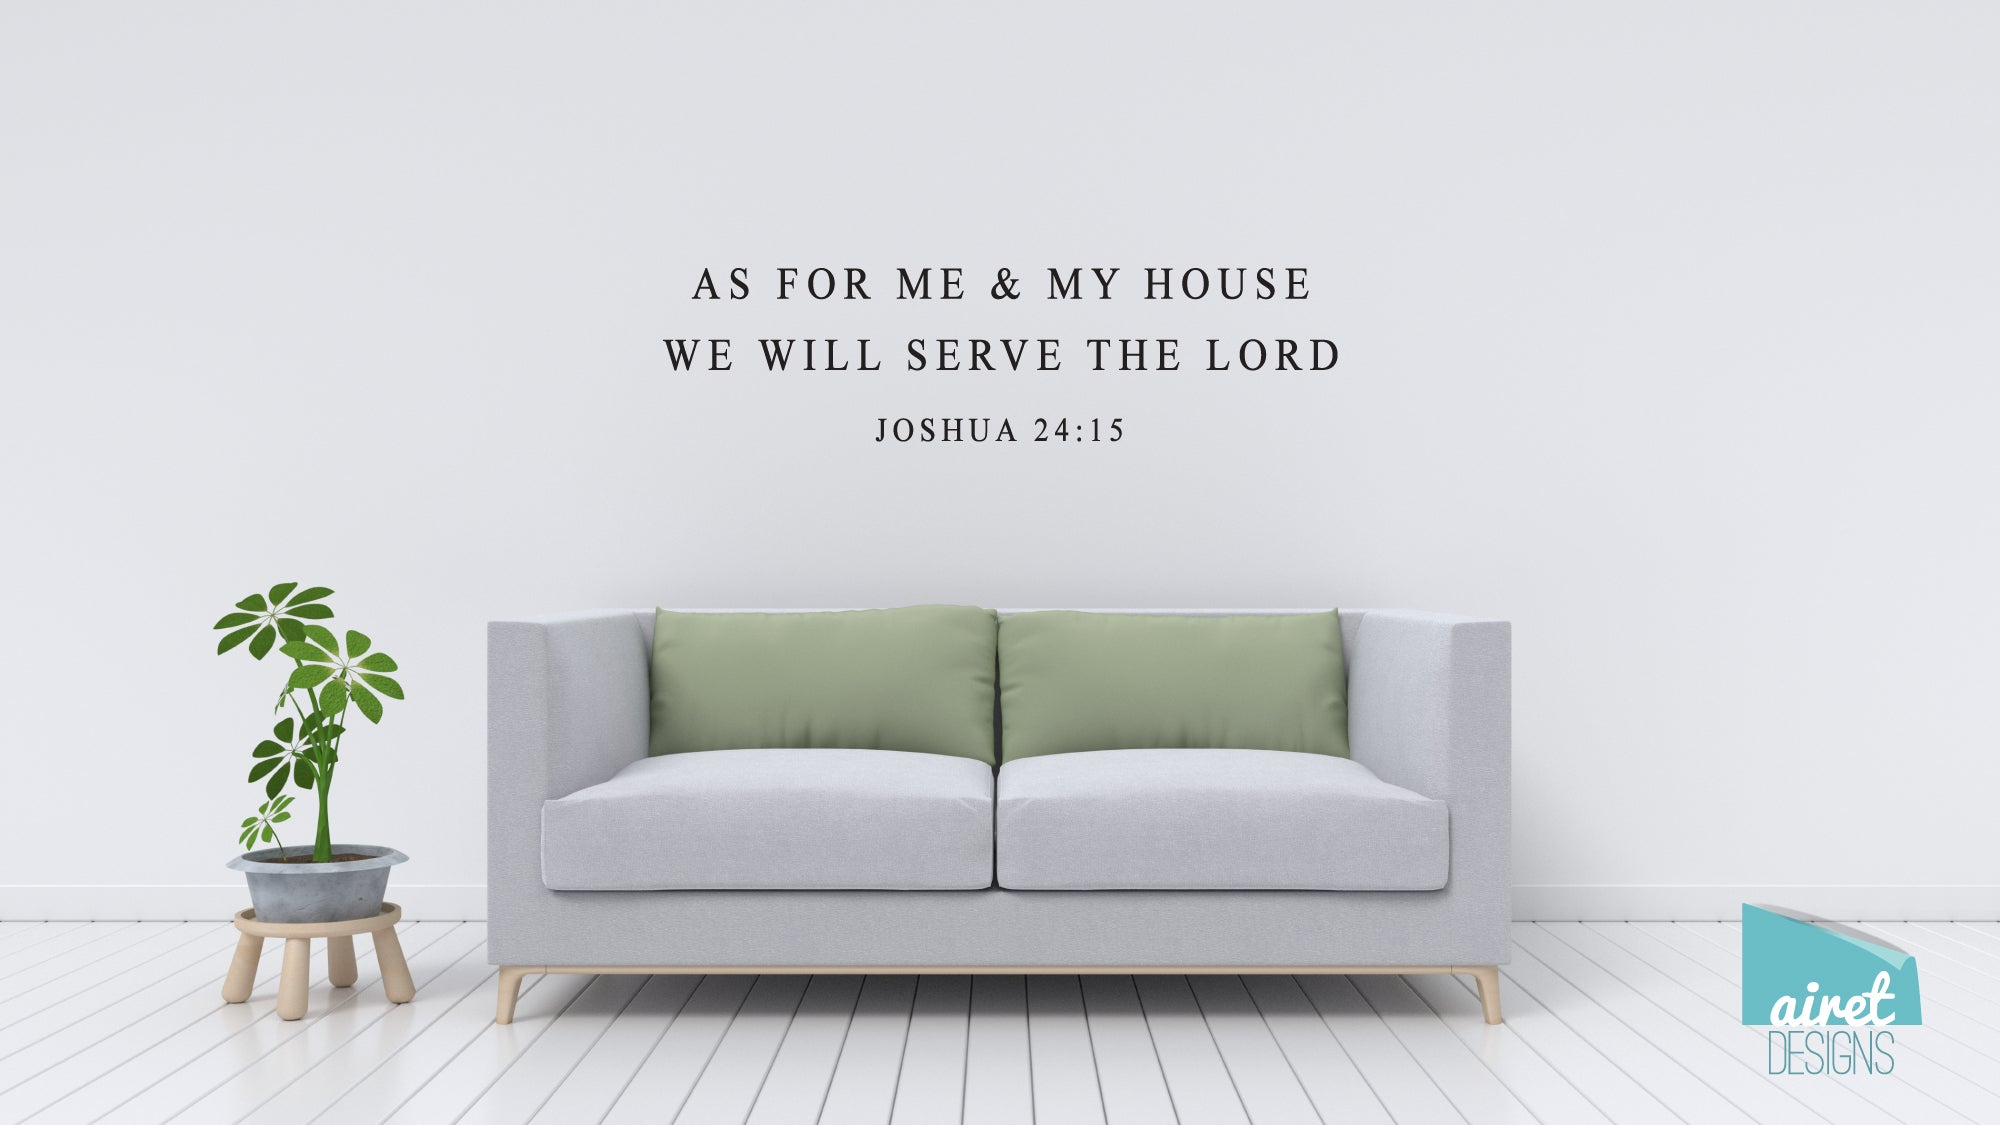 As For Me And My House We Will Serve The Lord - Vinyl Decal Wall Art Decor Sticker - scripture simple minimal Christian home sticker v3